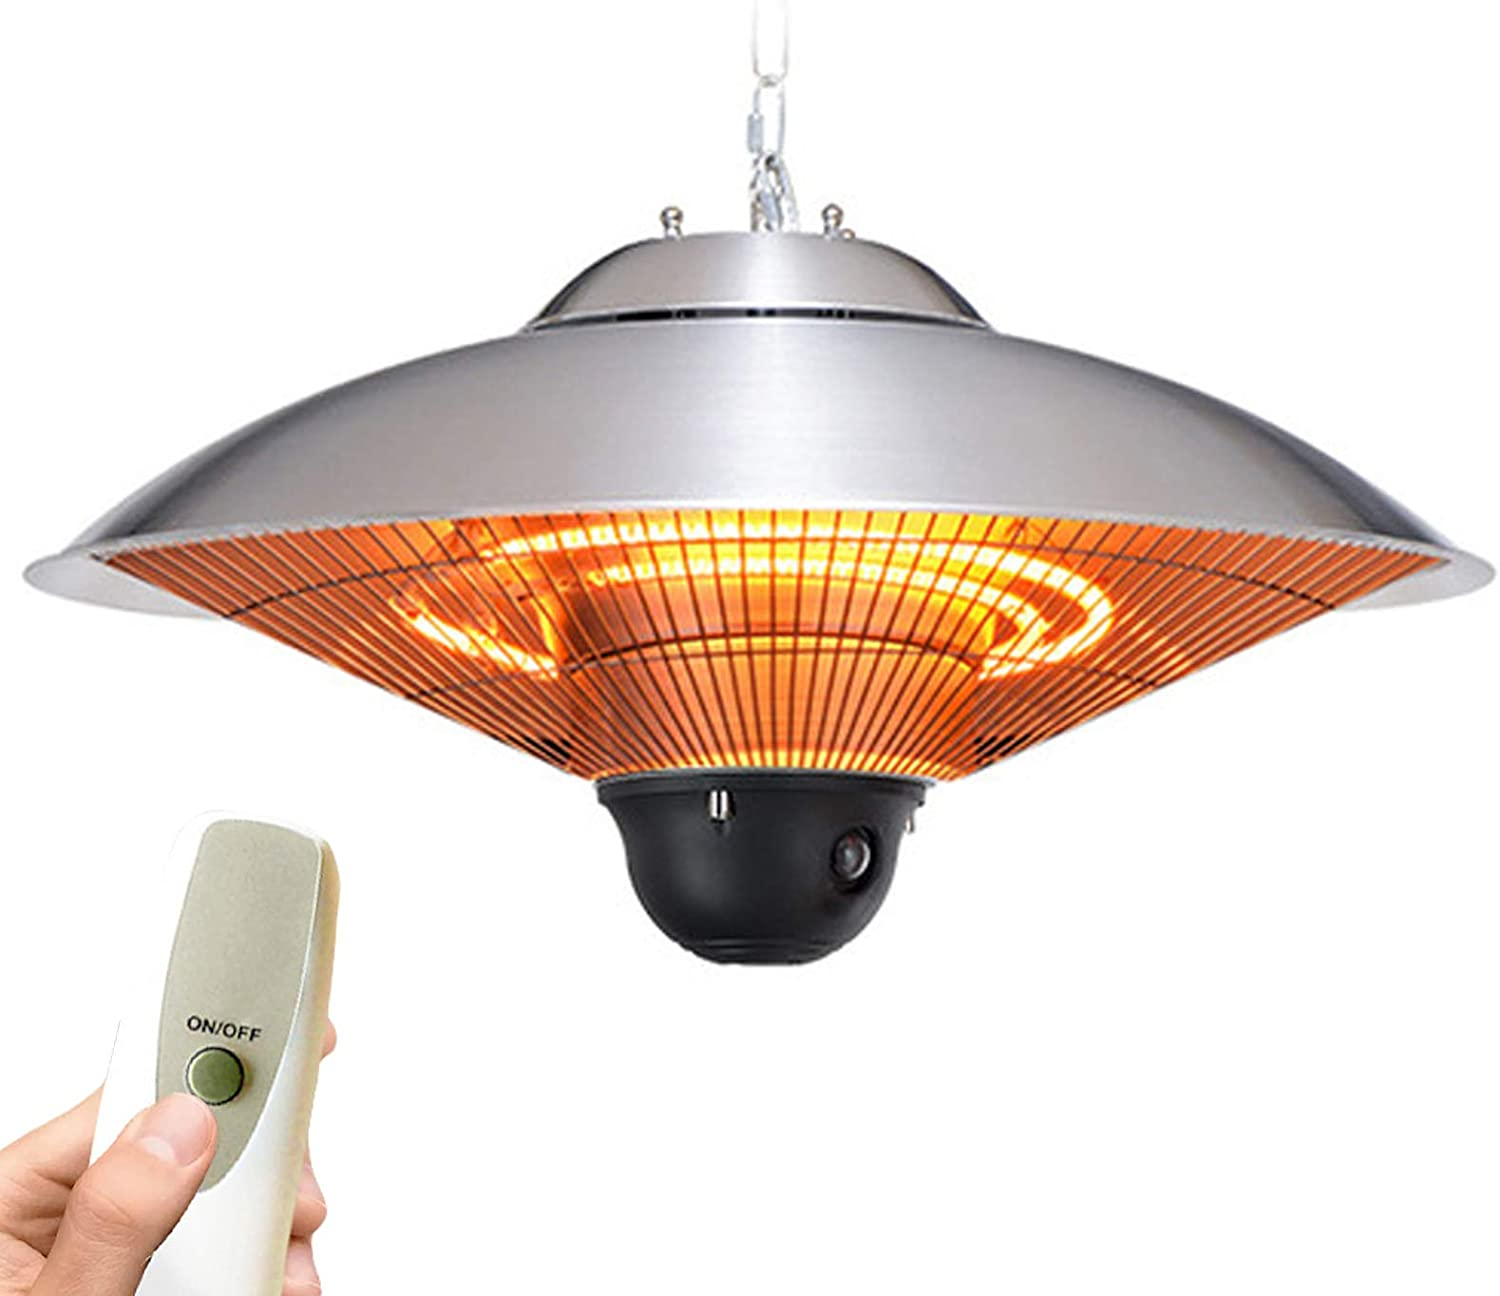 Waterproof 3 Power Settings Parasol Heaters For Halogen Garden 2500w Ceiling Patio Heater S Electric Hanging Patio Heaters Outdoor Umbrella-Shaped Infrared Heater With Remote Control